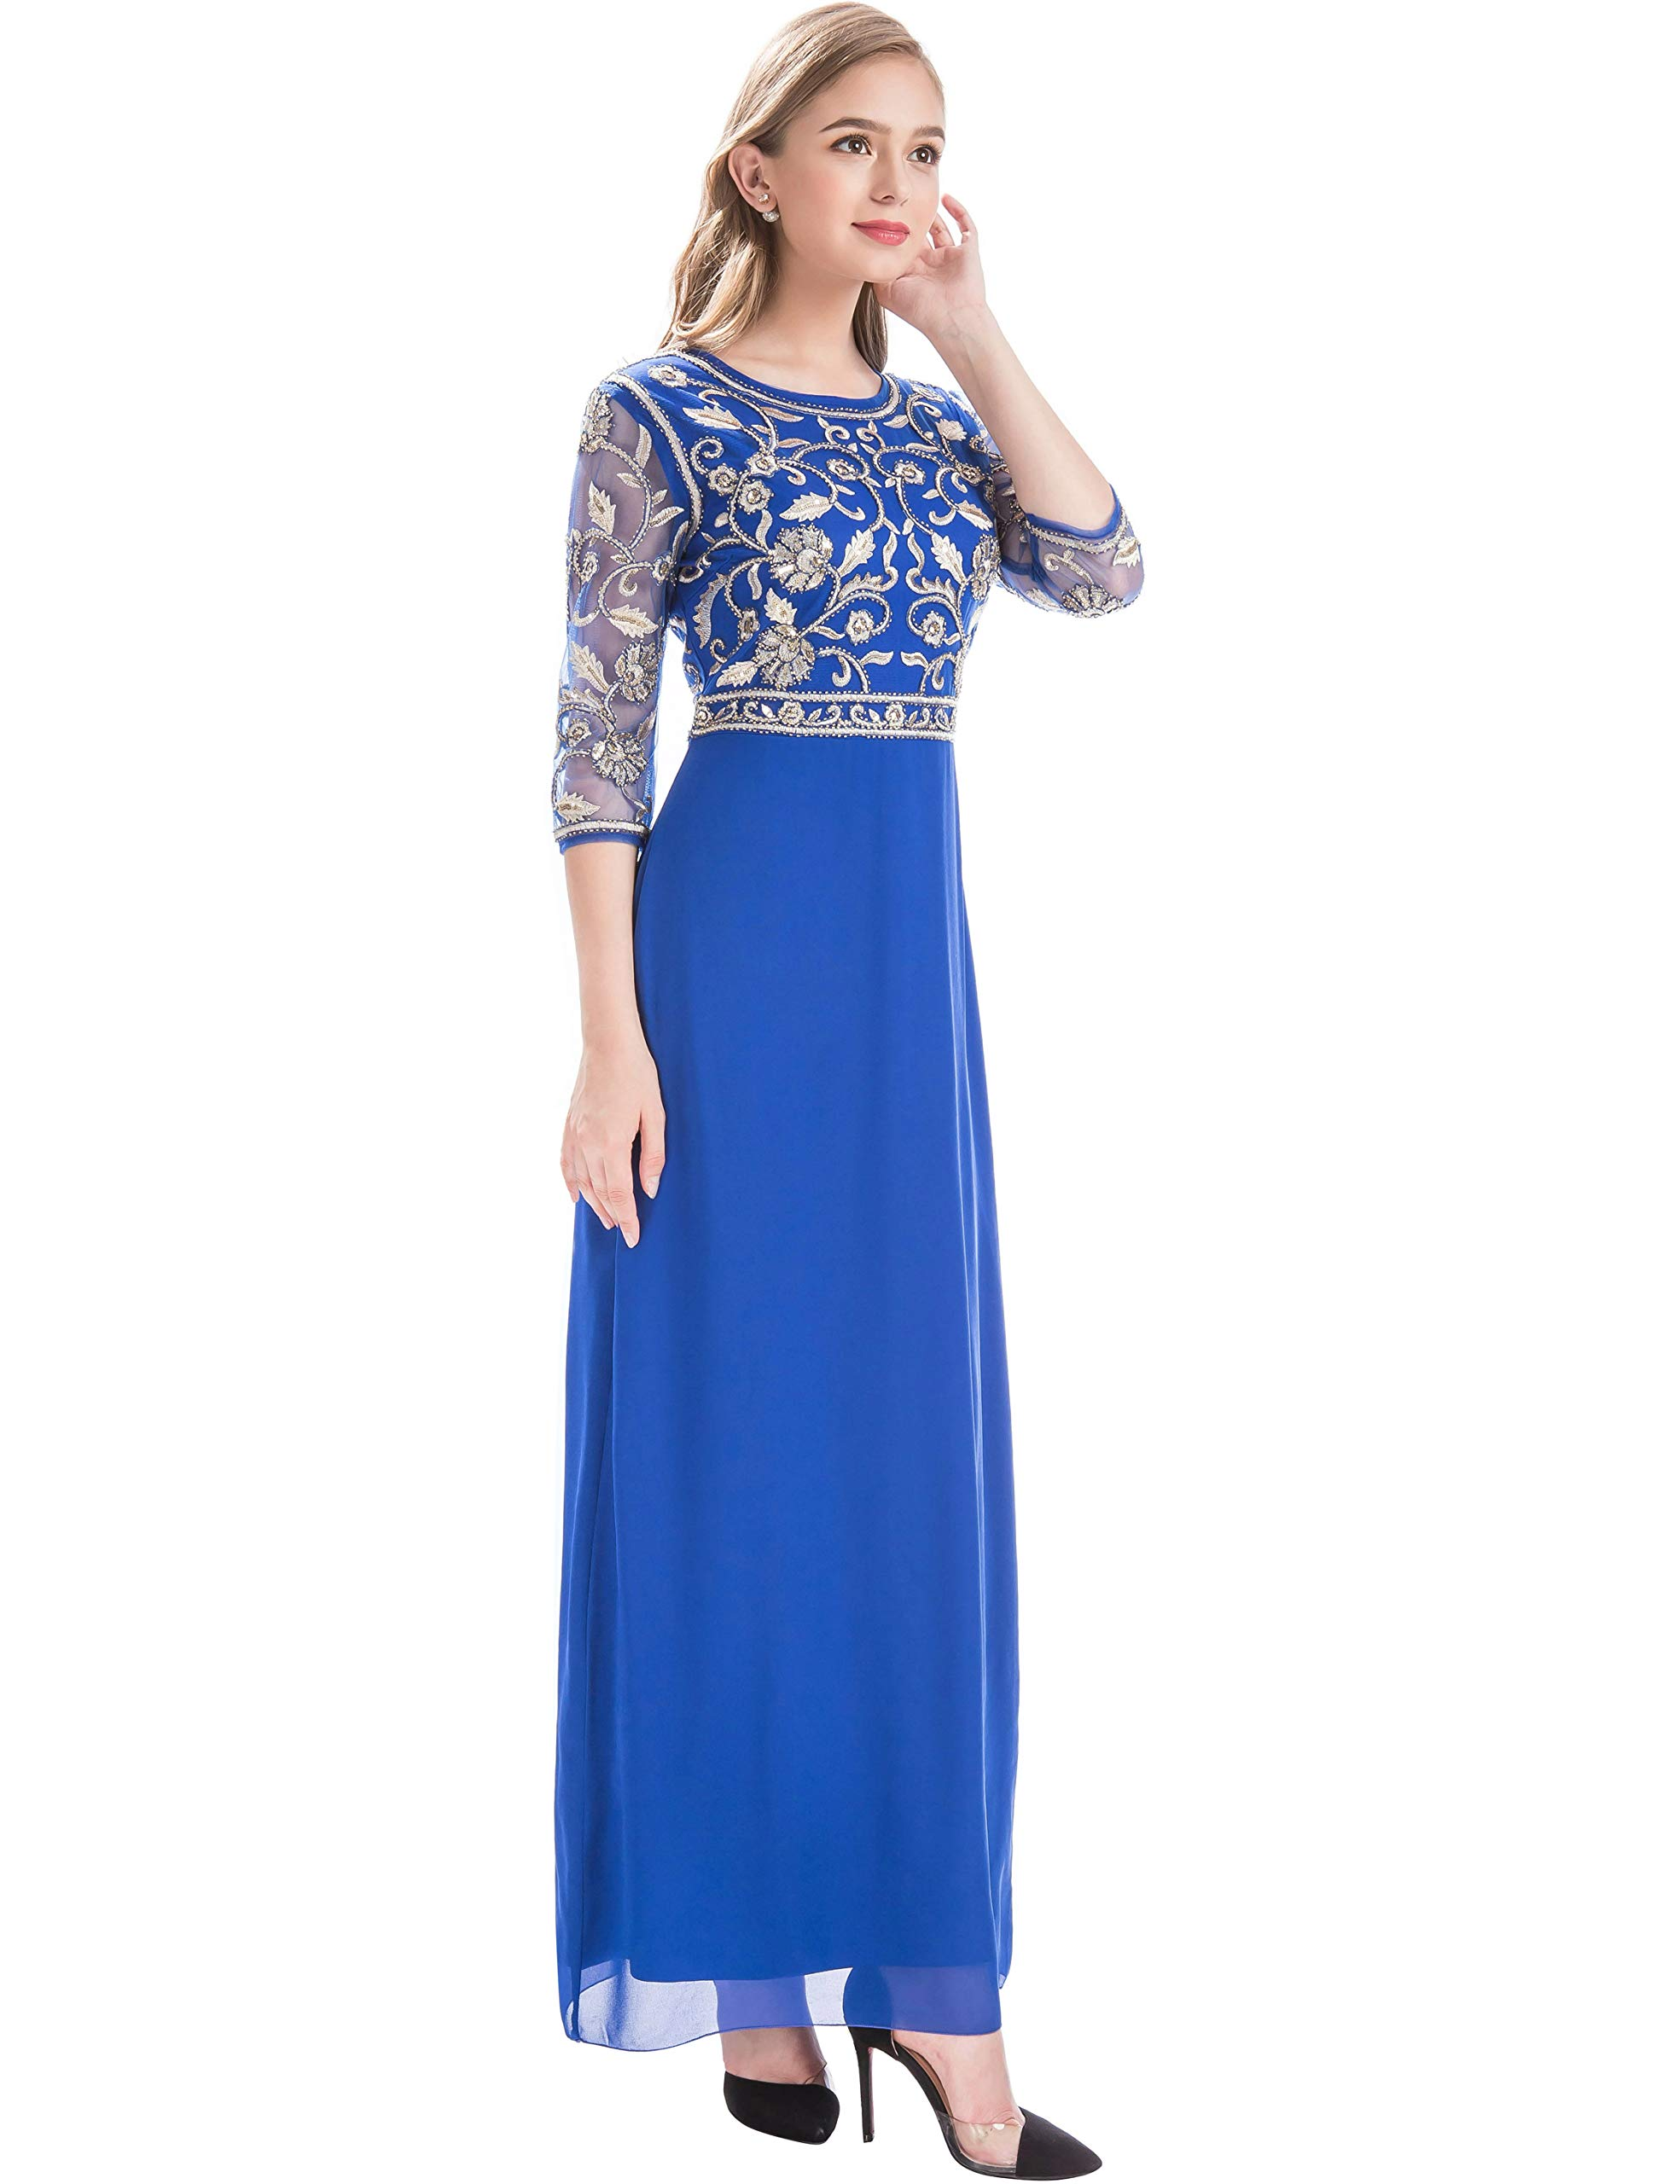 MANER Women Chiffon Beaded Sequin 3/4 Sleeve Long Gowns Prom Evening Bridesmaid Dress (L, Royal Blue/Gold)